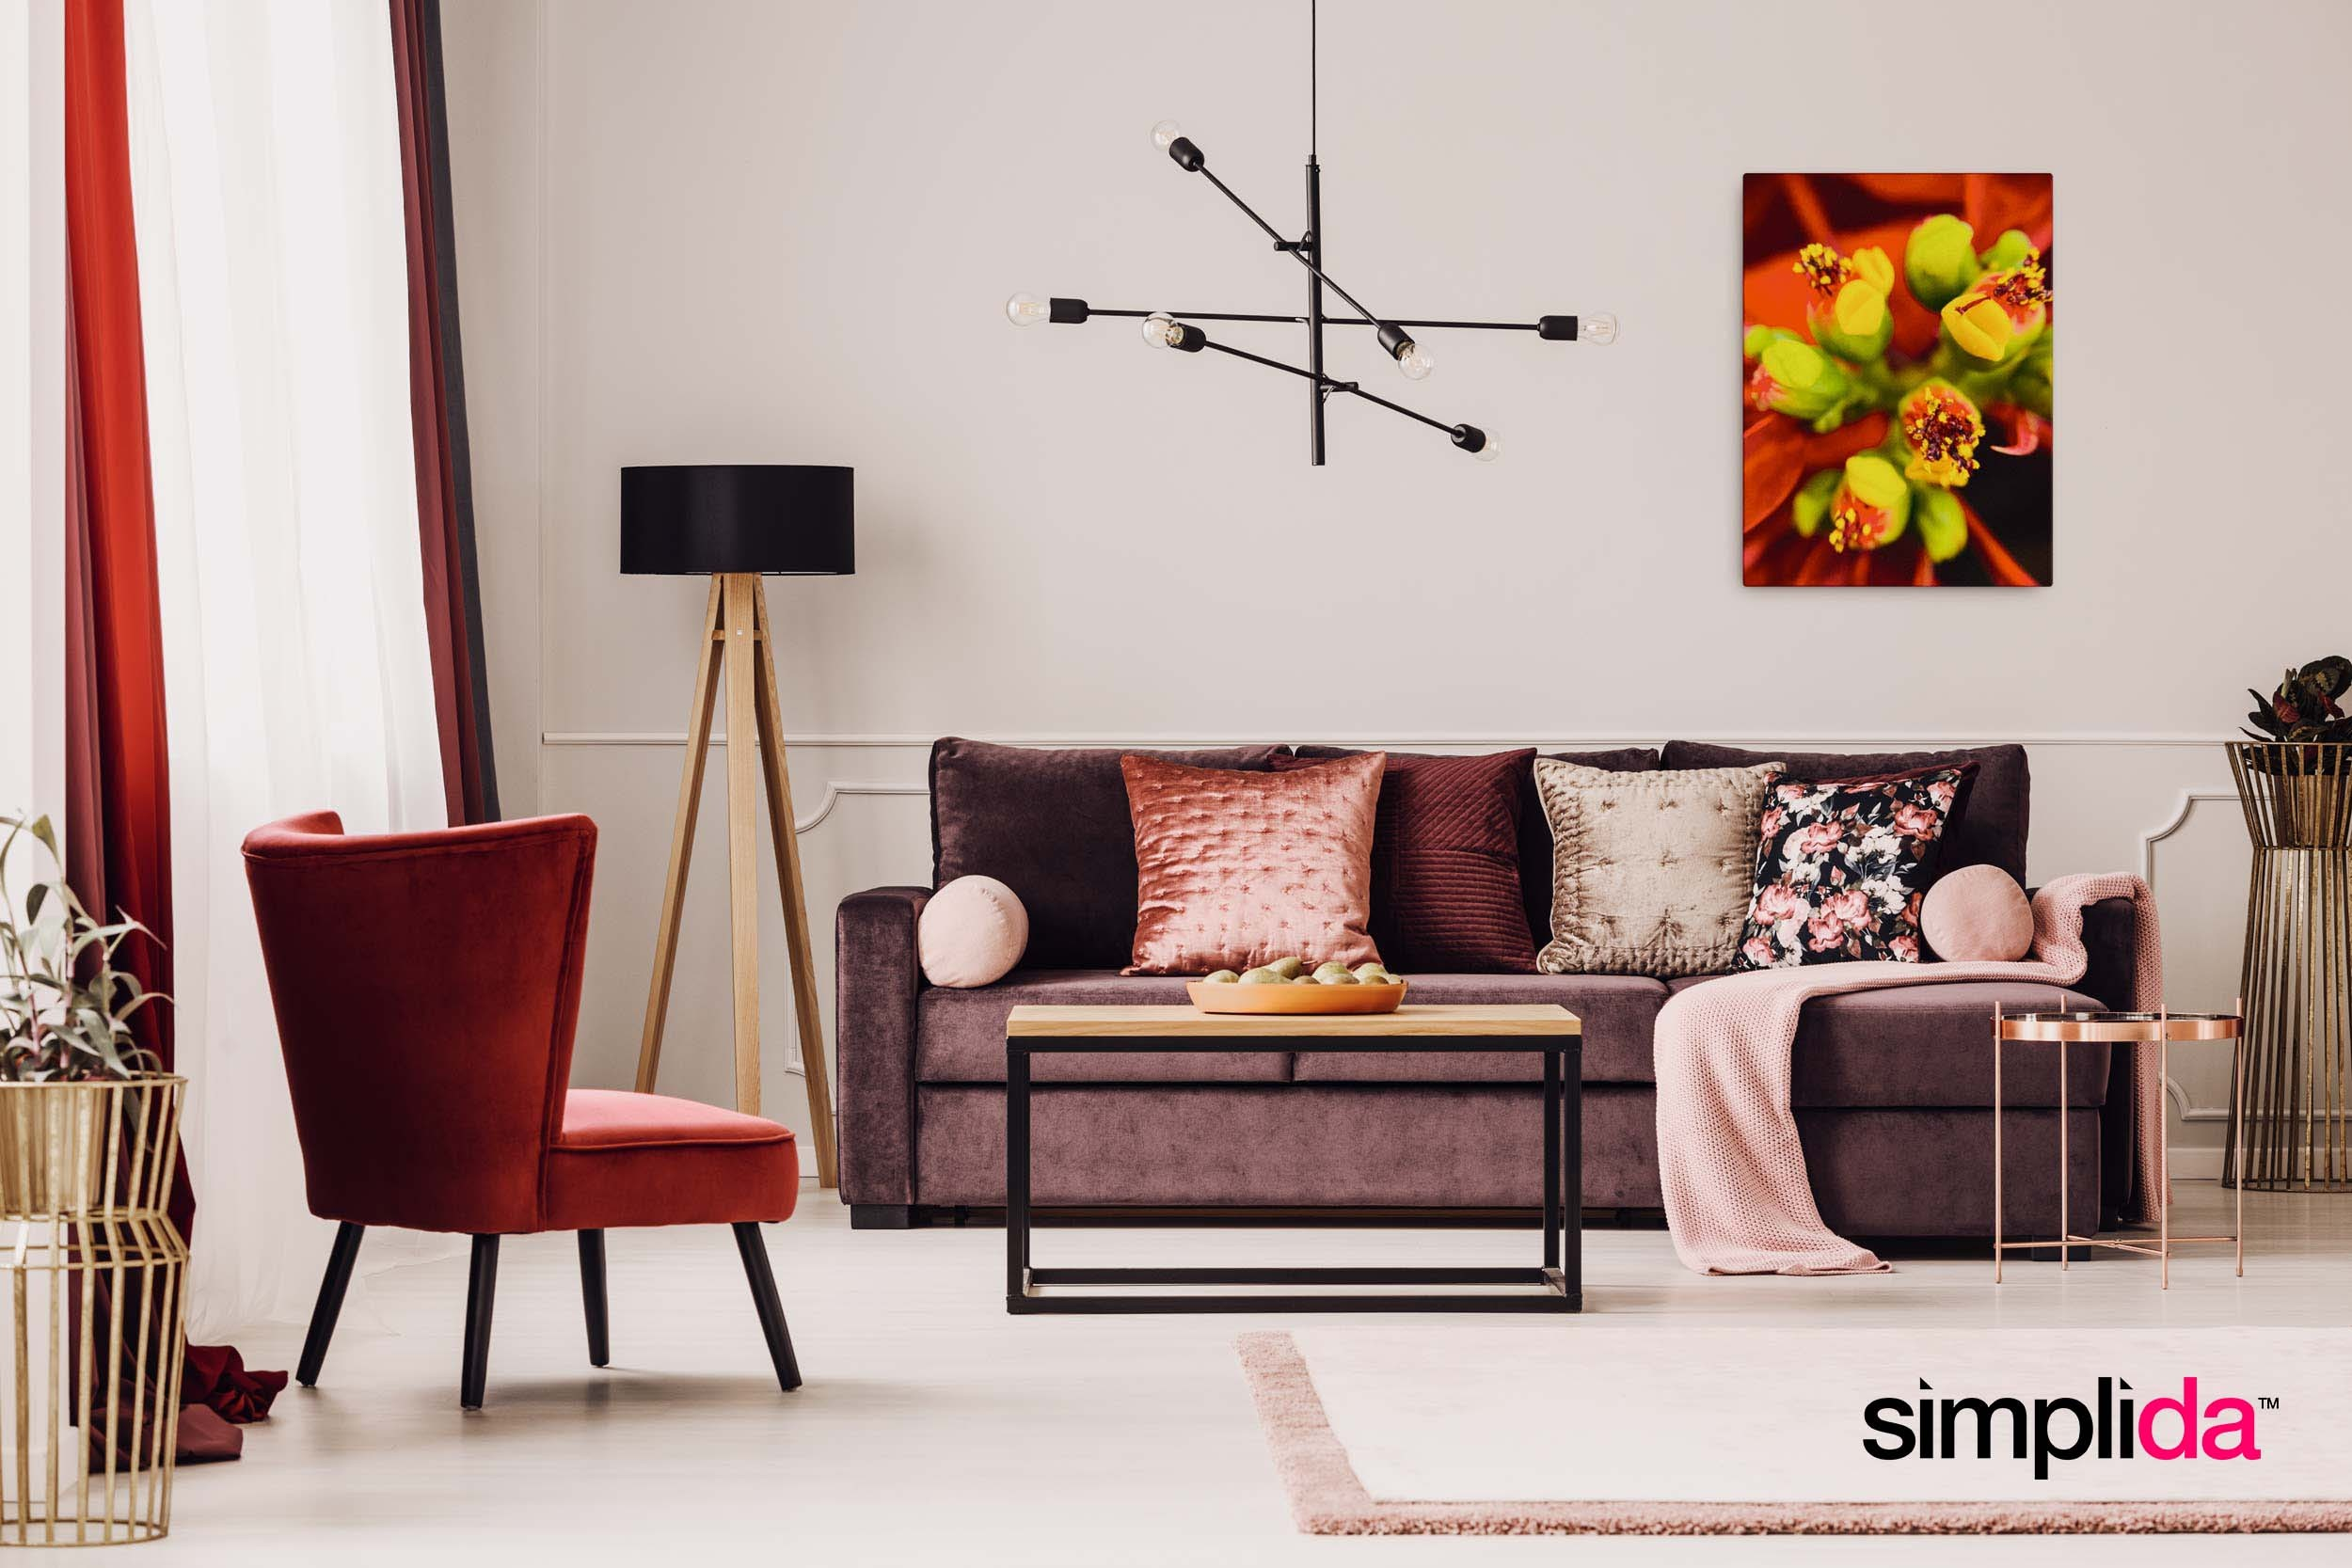 Simplida – World's Finest Wall Art – Canvas Photo Prints